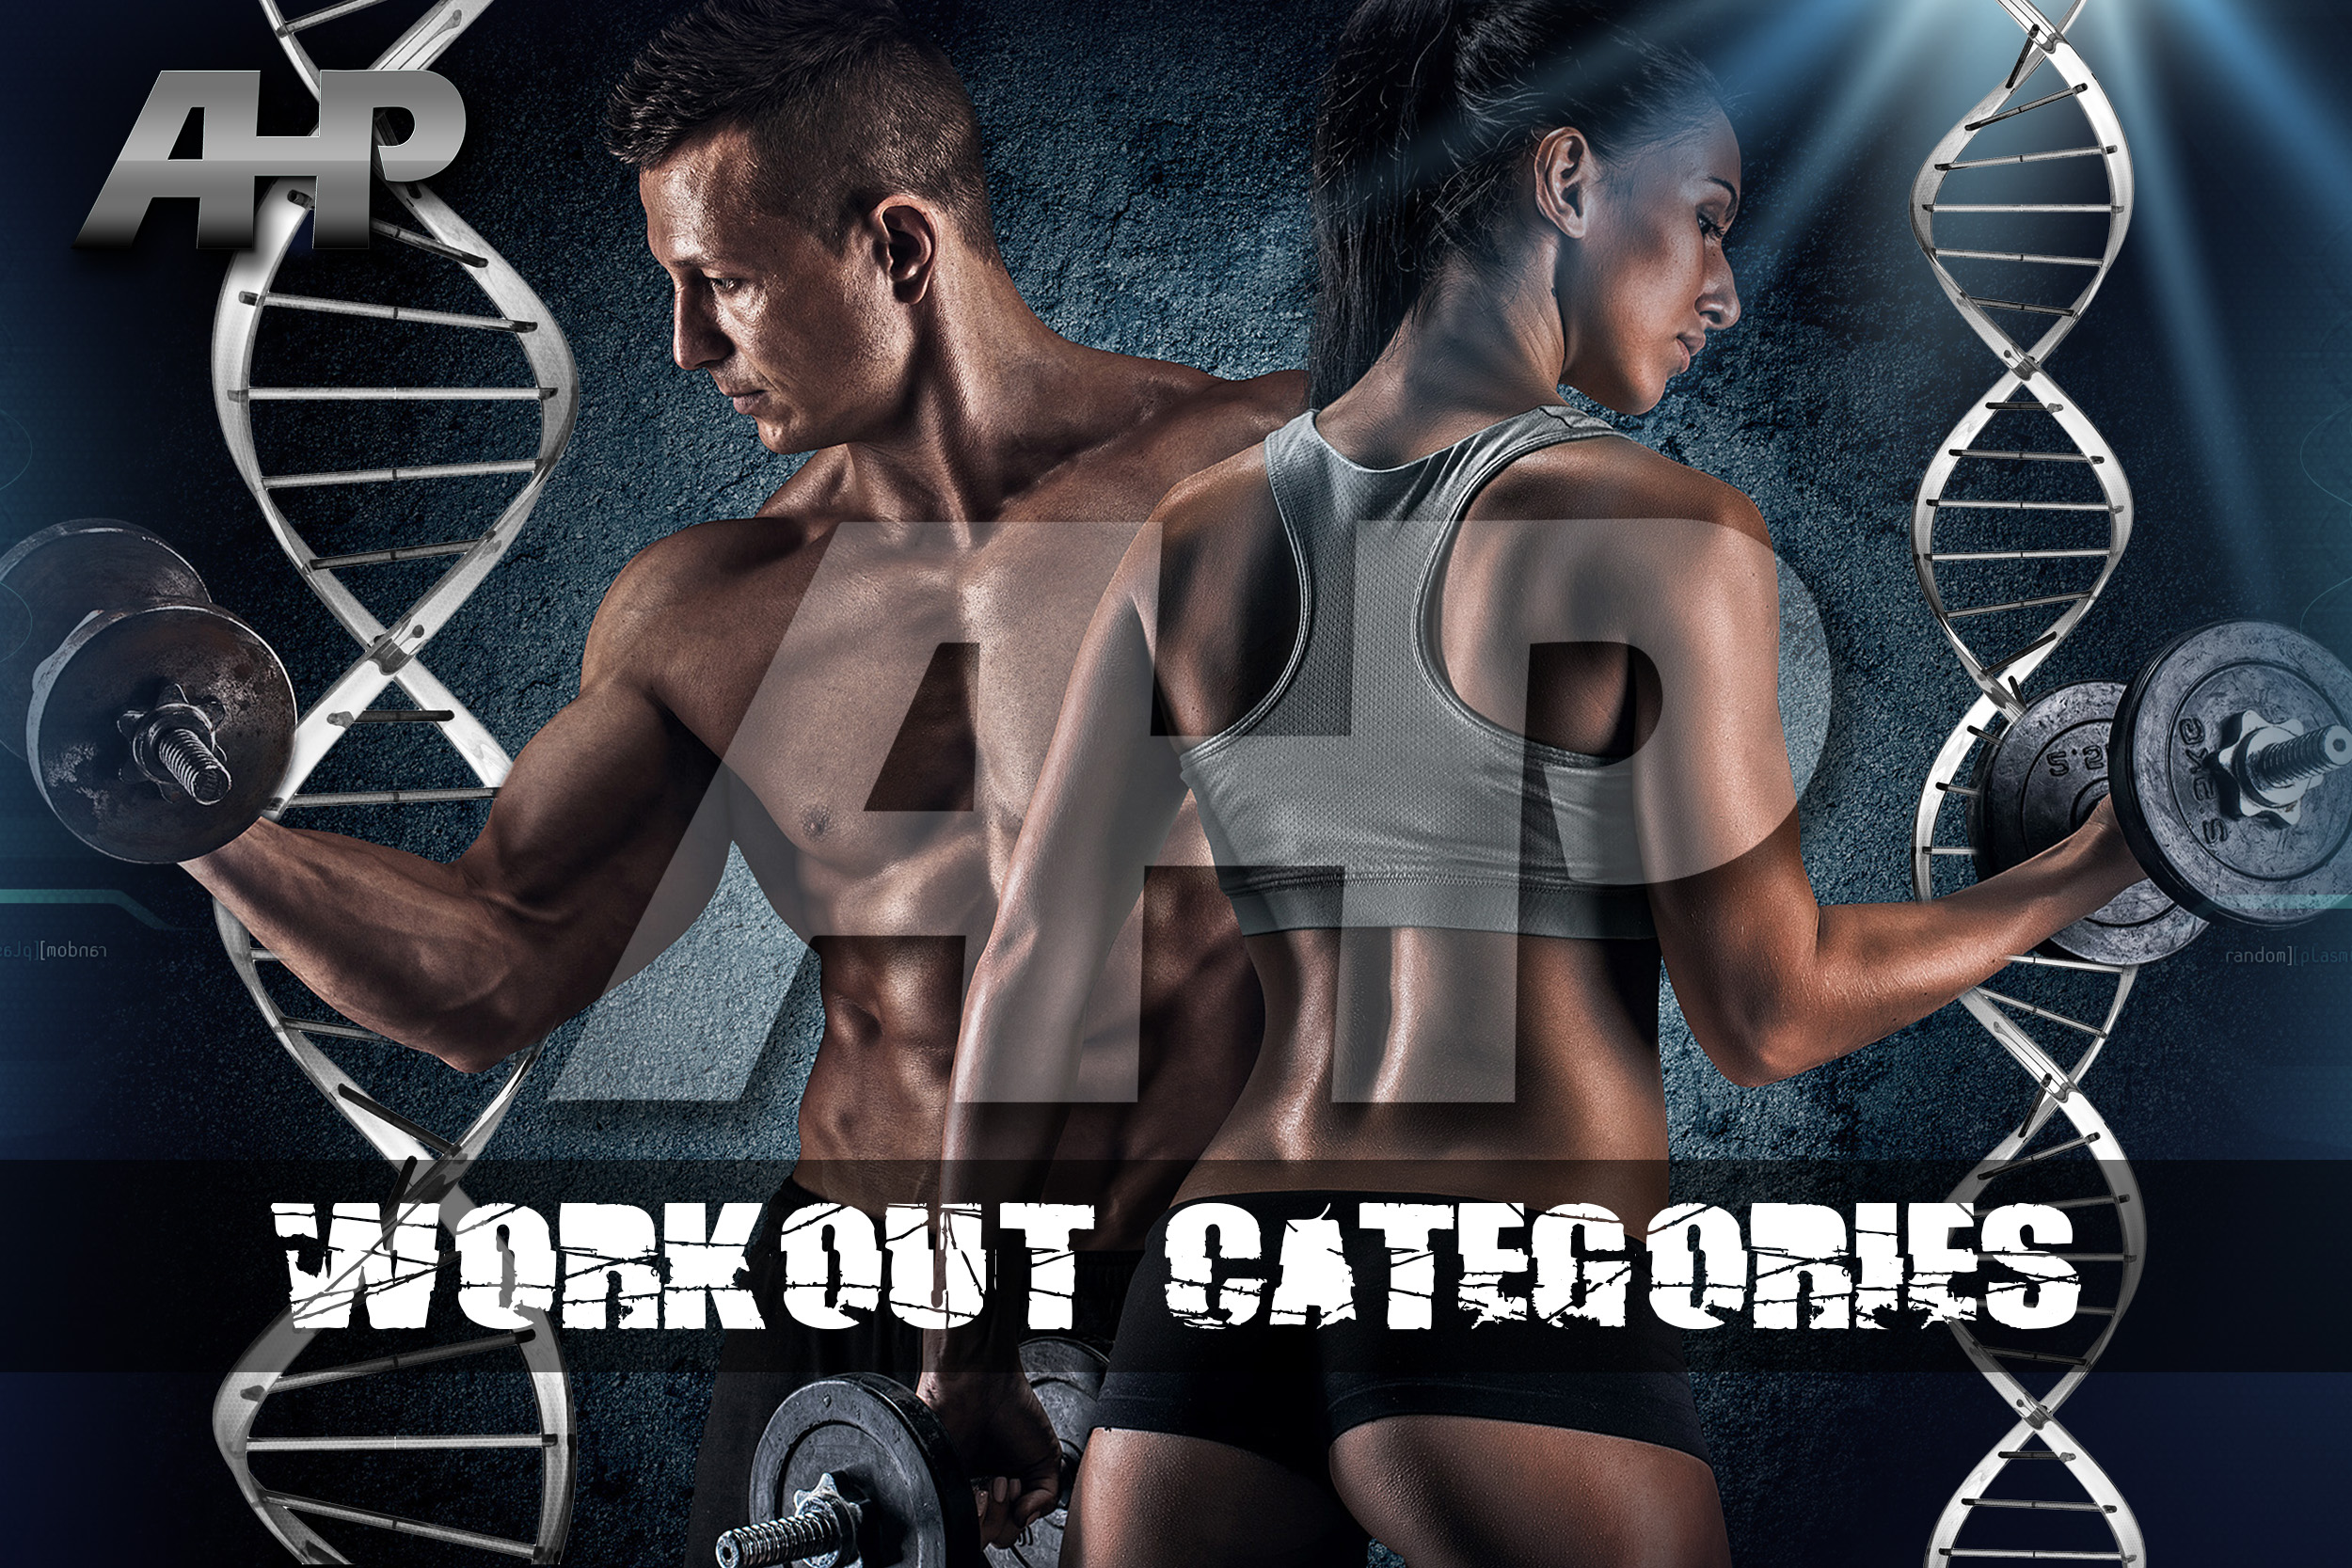 Workout Categories - Training Redefined (AHP).jpg